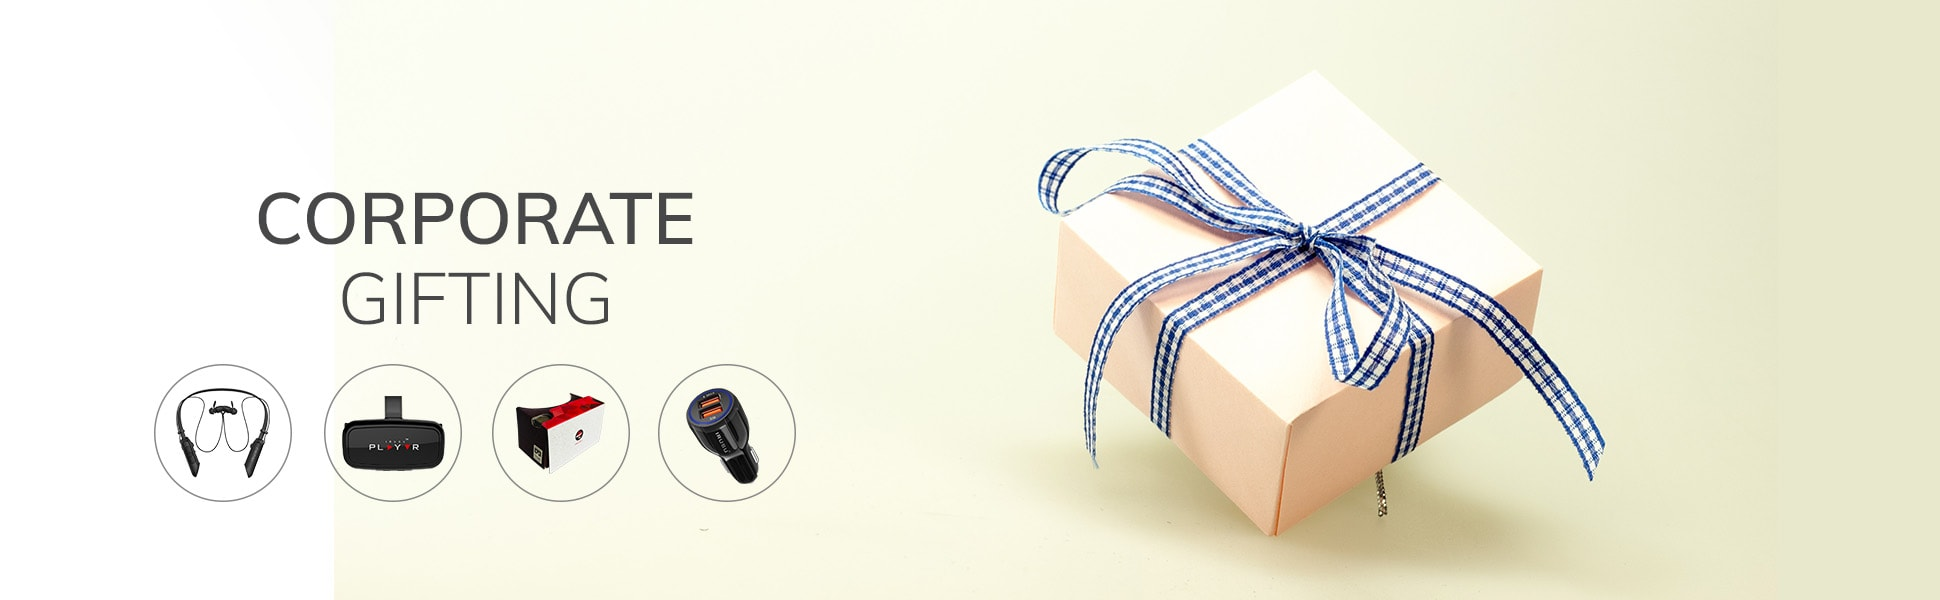 Corporate_Gifting_ideas_Image_Slider_Size